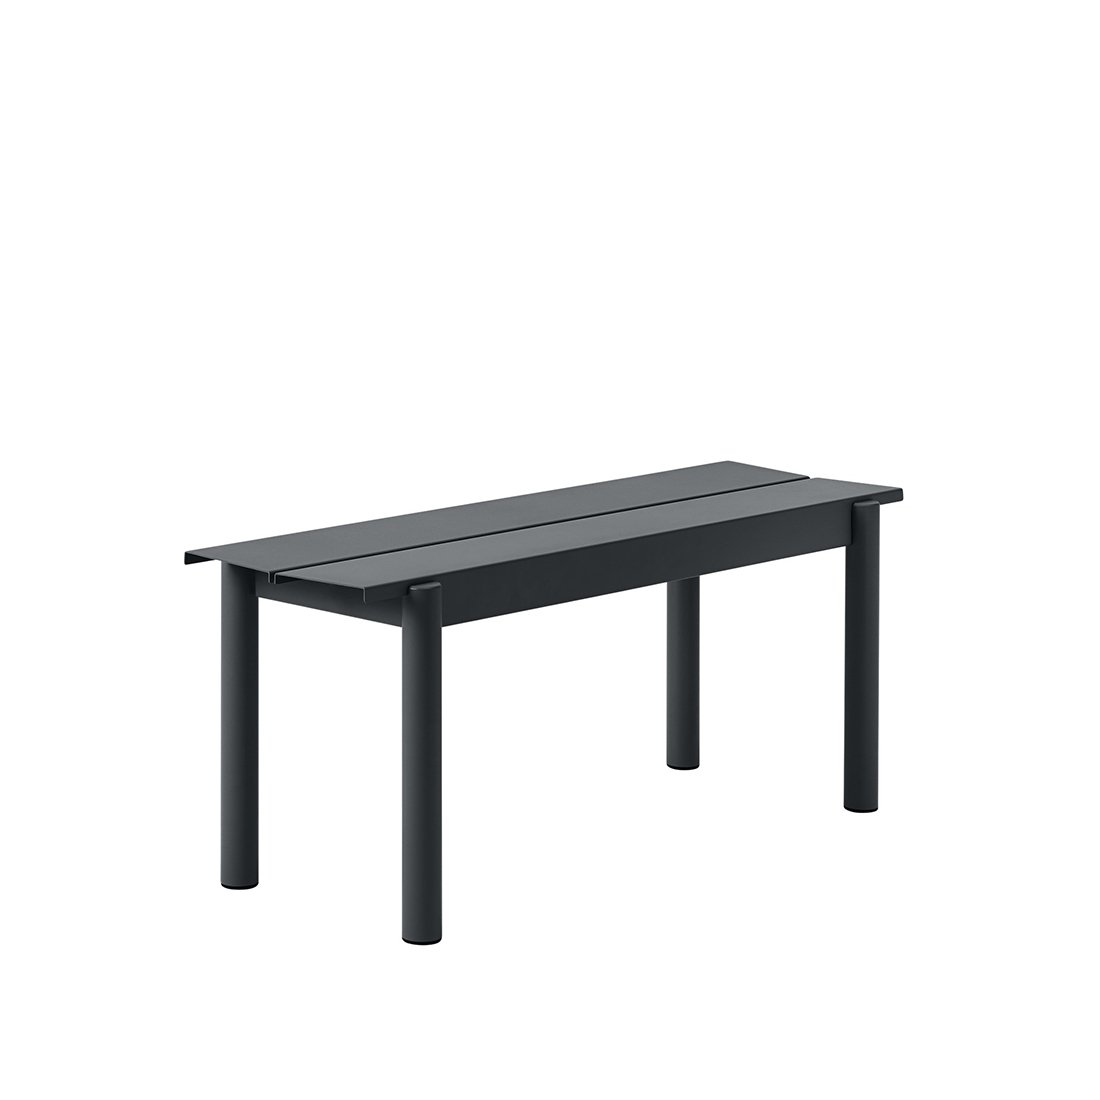 Muuto Linear Steel Bank Black - b. 110 cm.